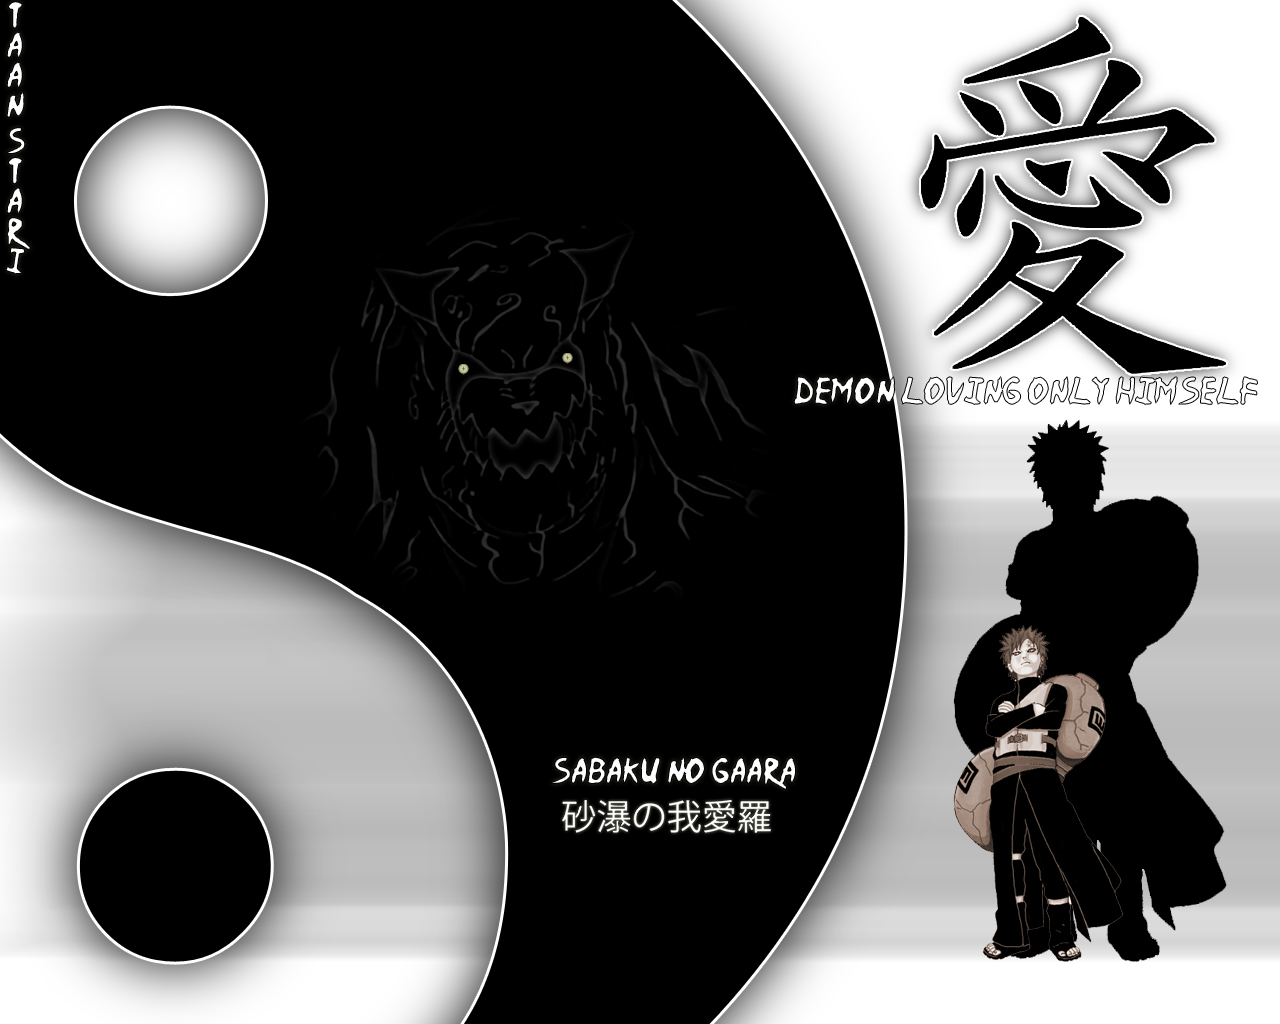 Here are another Gaara Wallpapers from Naruto Episodes.